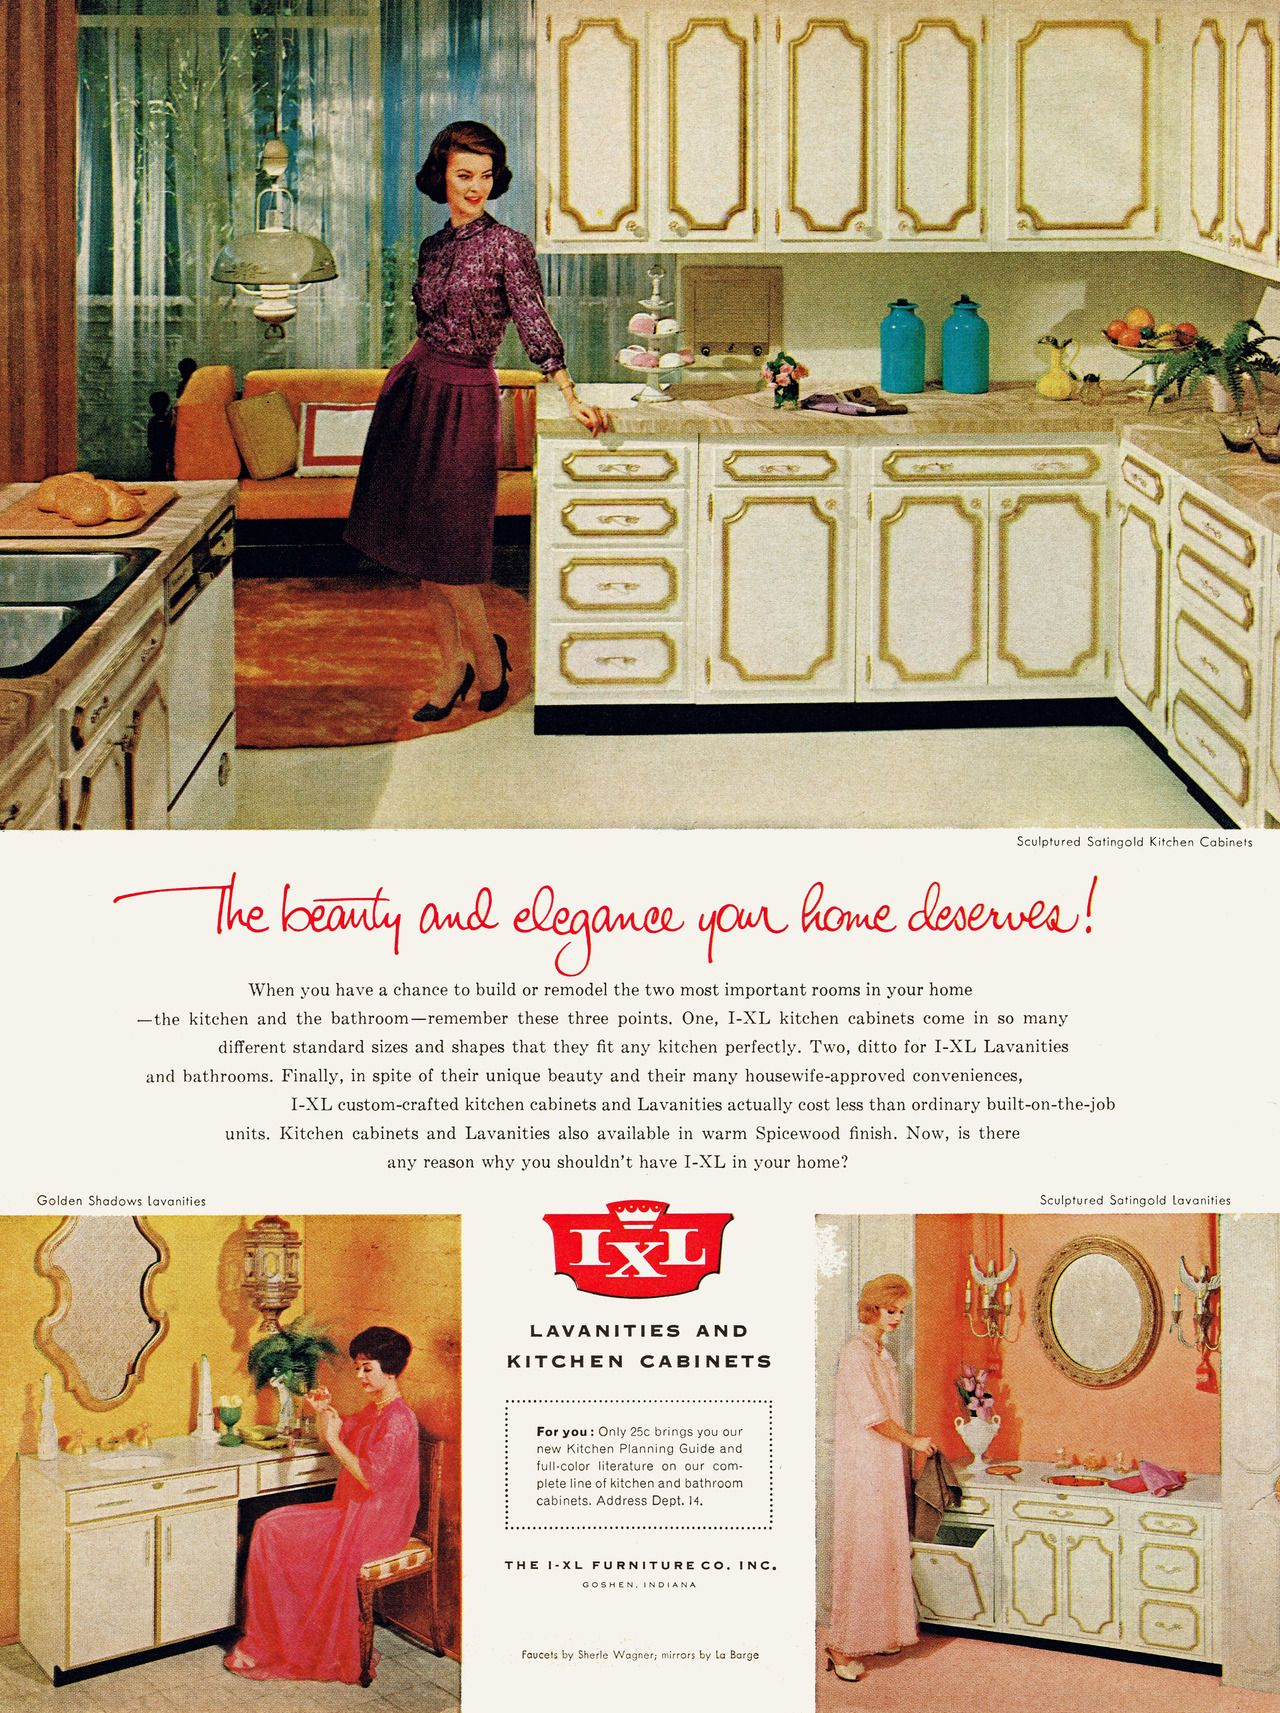 Ixl Lavanities And Kitchen Cabinets 1963 Vintage House Retro Home Mid Century Modern Design